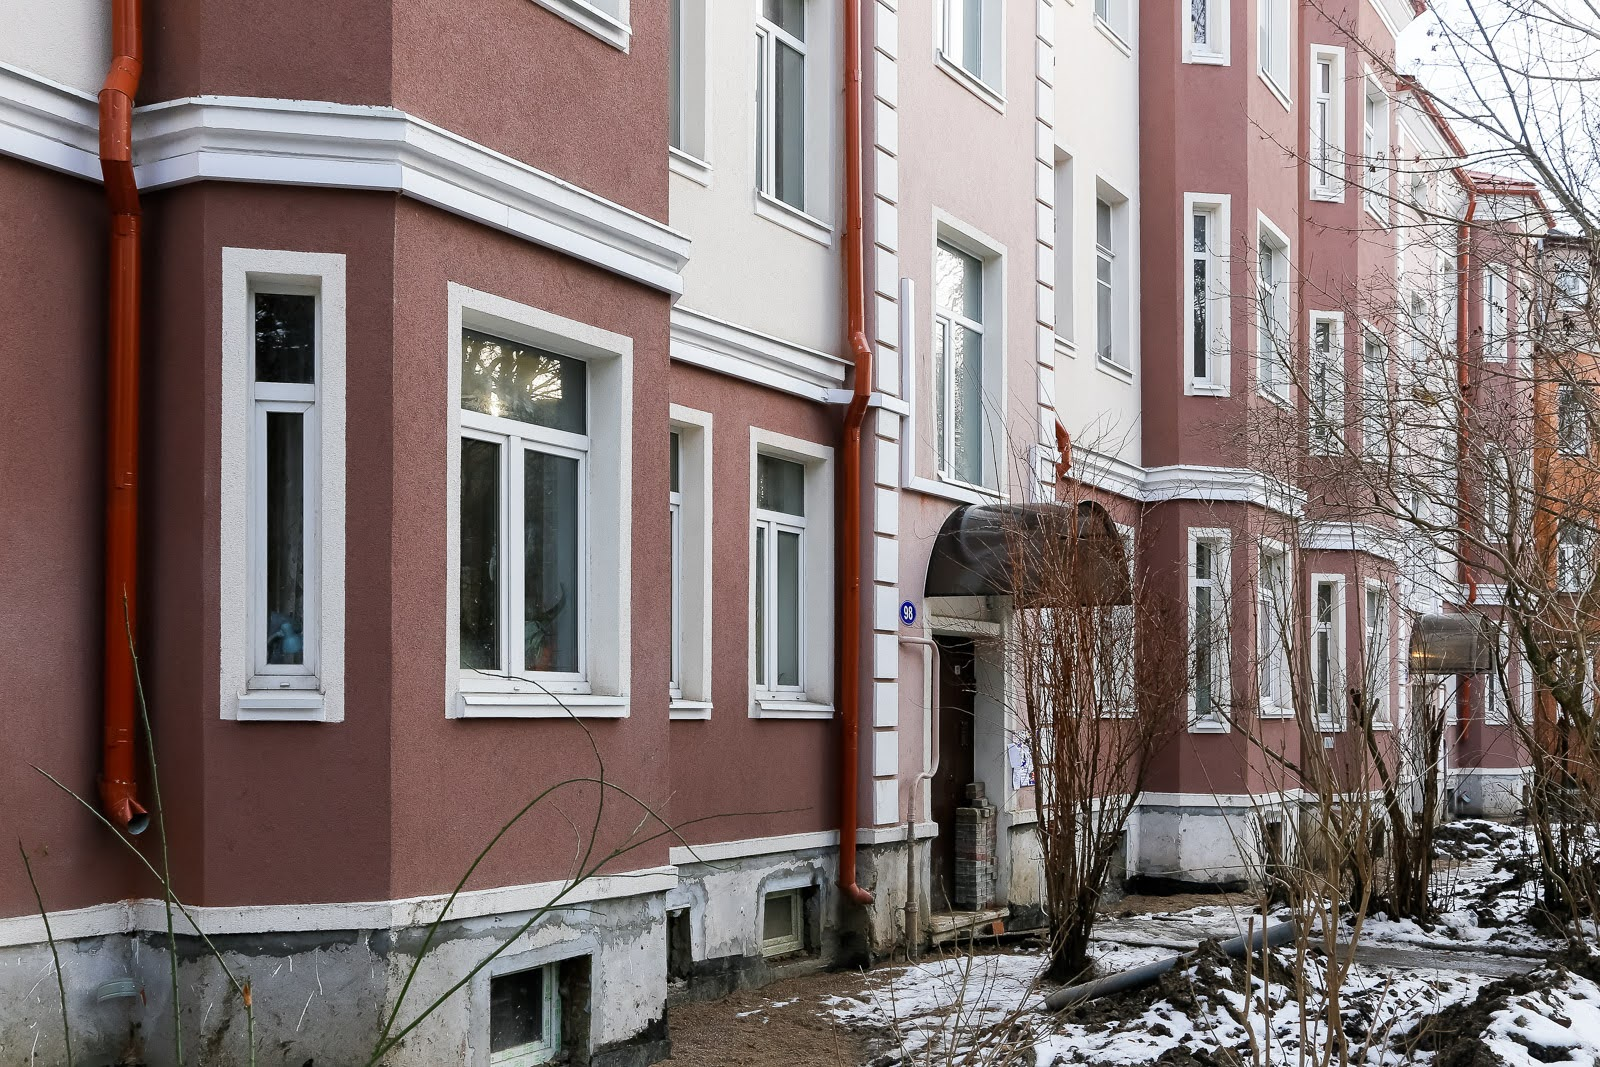 Russian Towns, Cities / Urban Development - Page 6 17